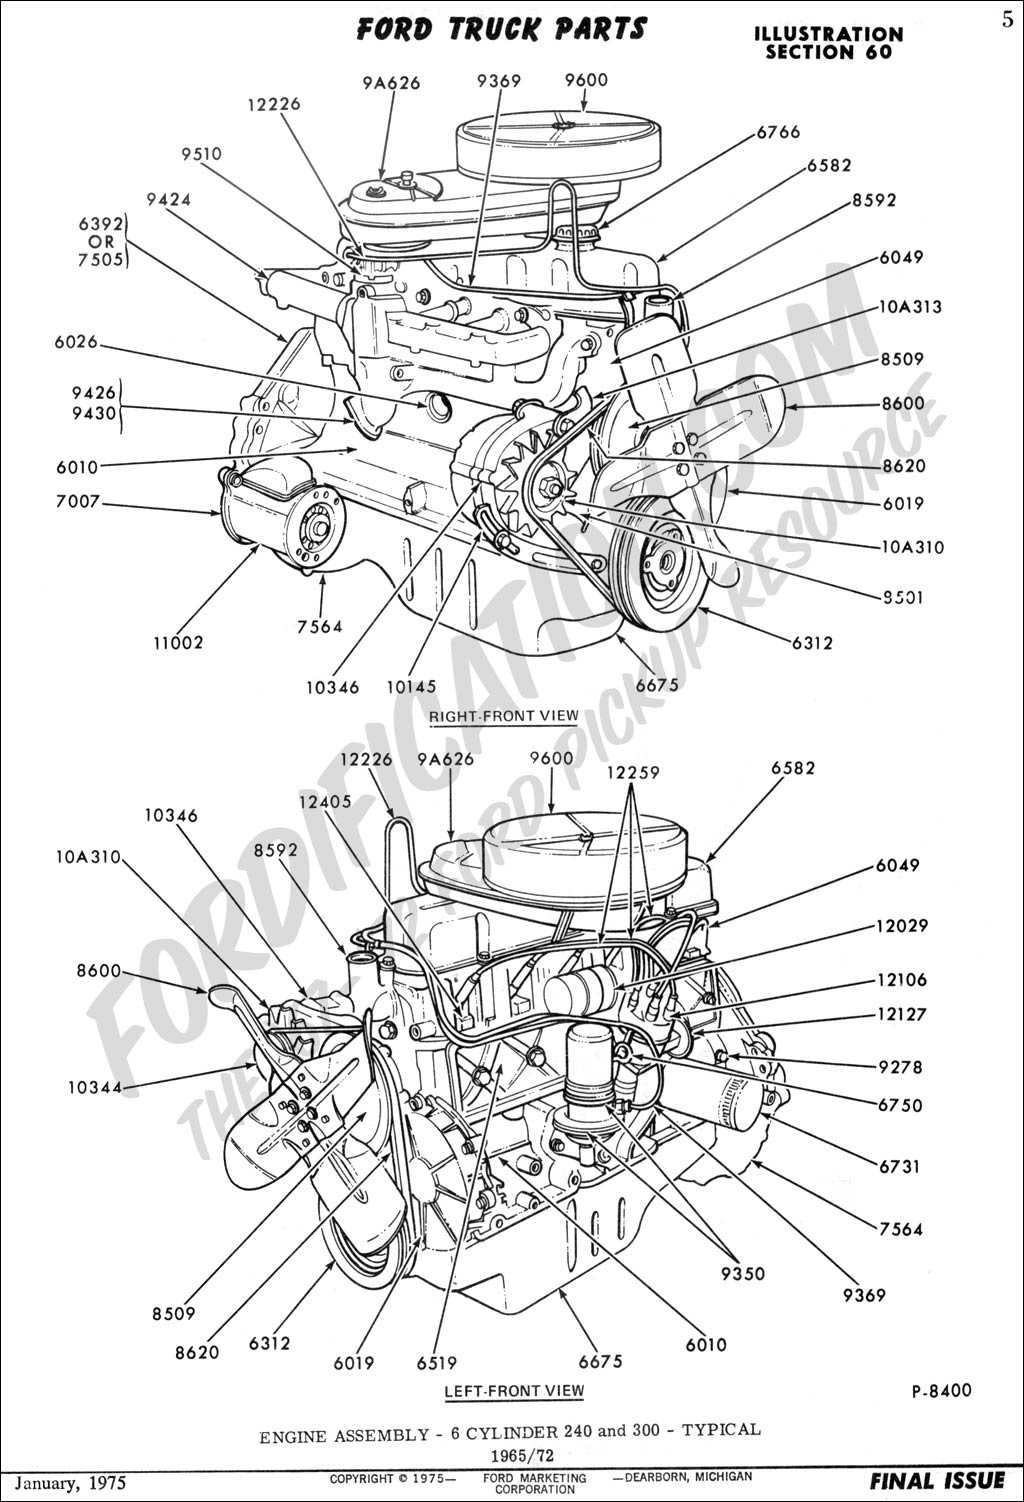 1098391 Oil Pump Location And Replacement on ford ranger exhaust system diagram